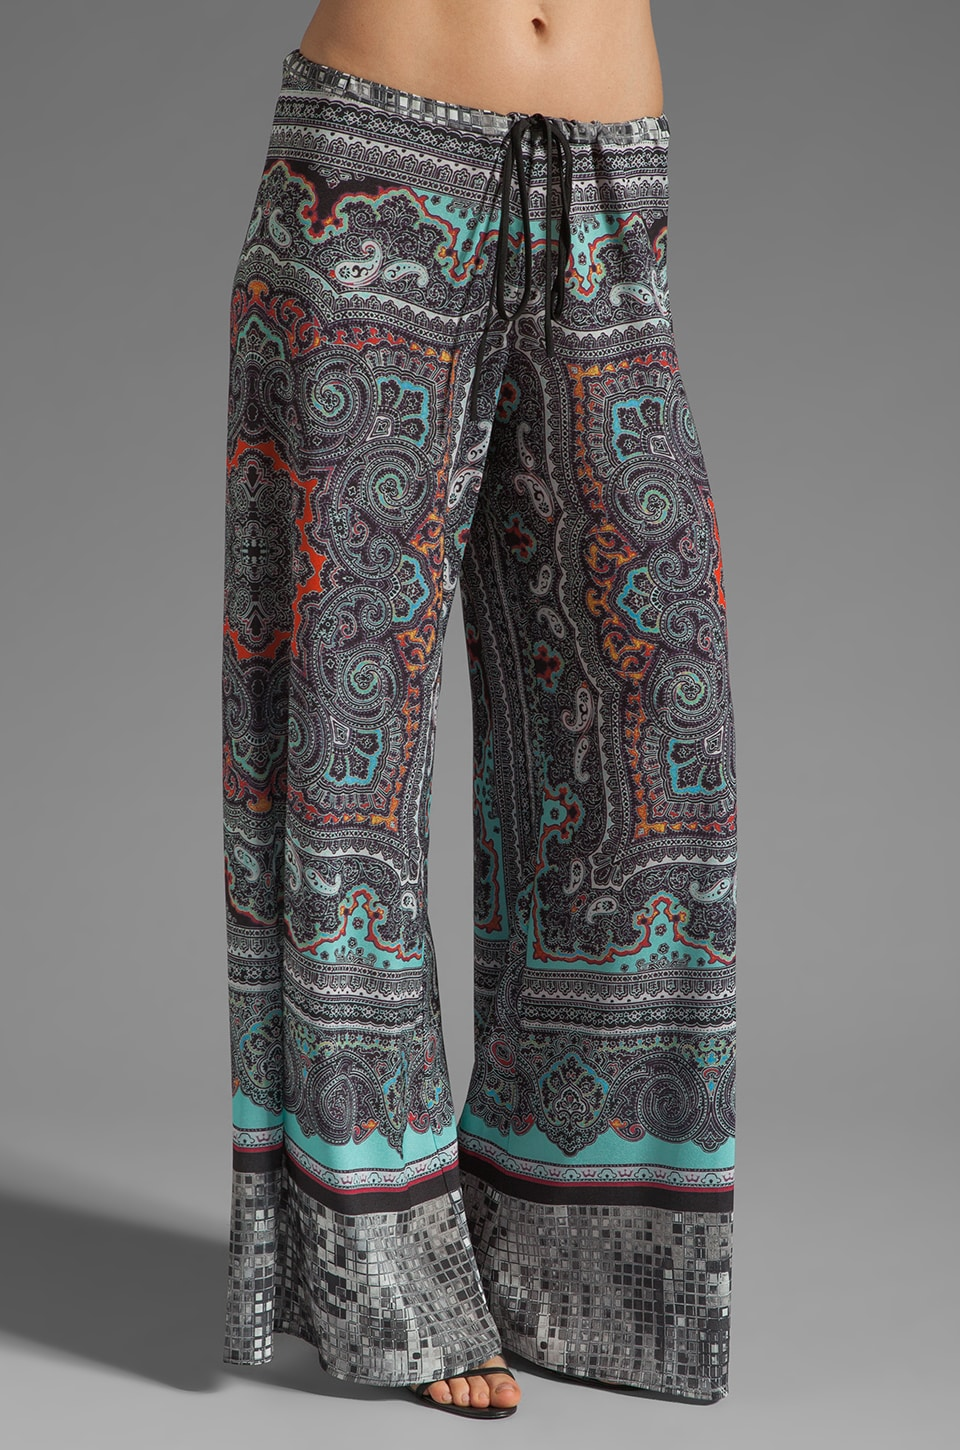 Clover Canyon Paisley Disco Pant in Multi